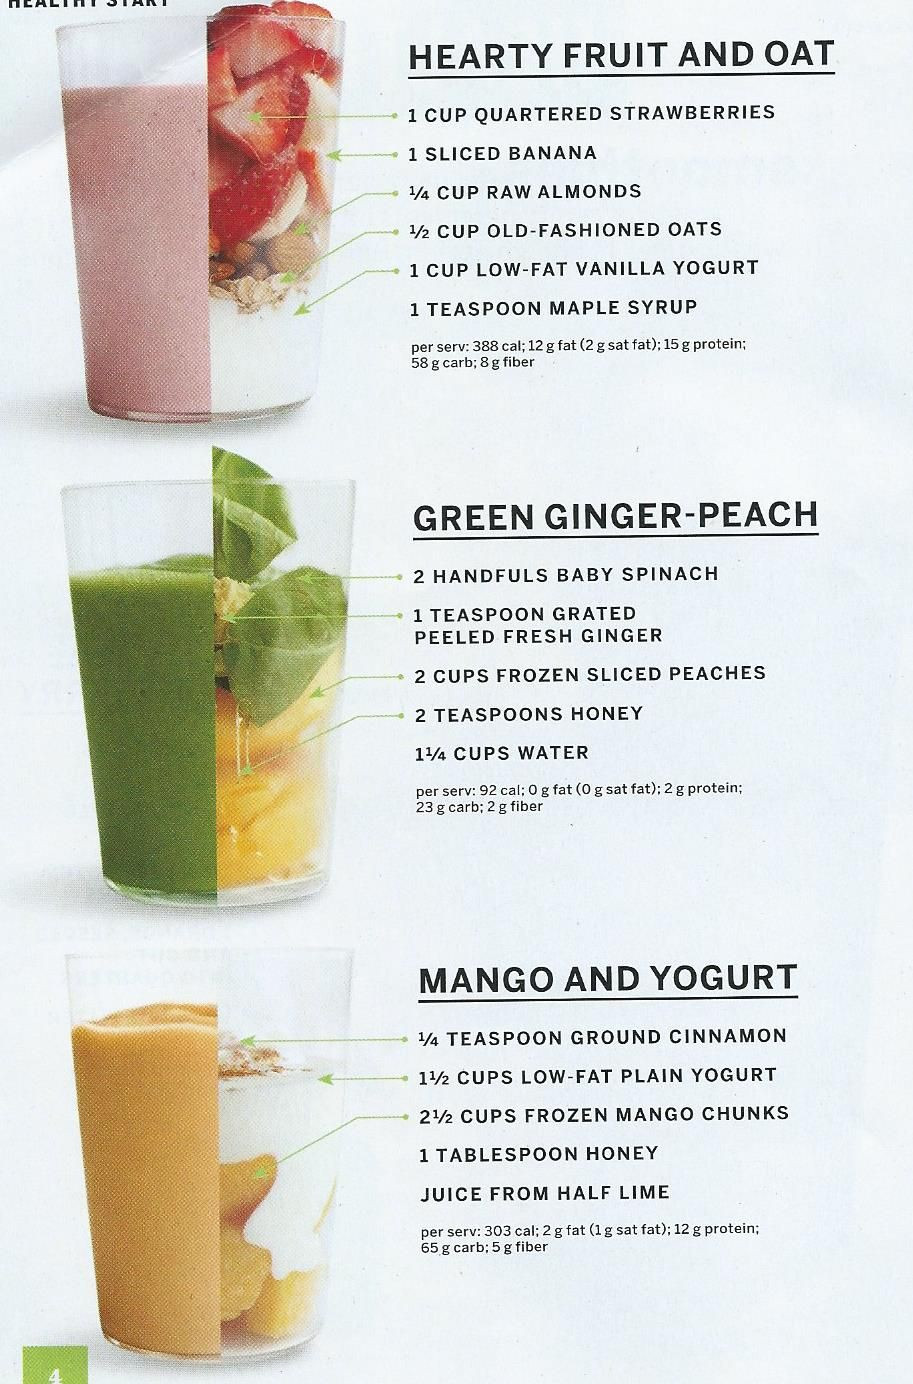 Best Healthy Smoothie Recipes  FREE 12 Day Green Smoothie E Course